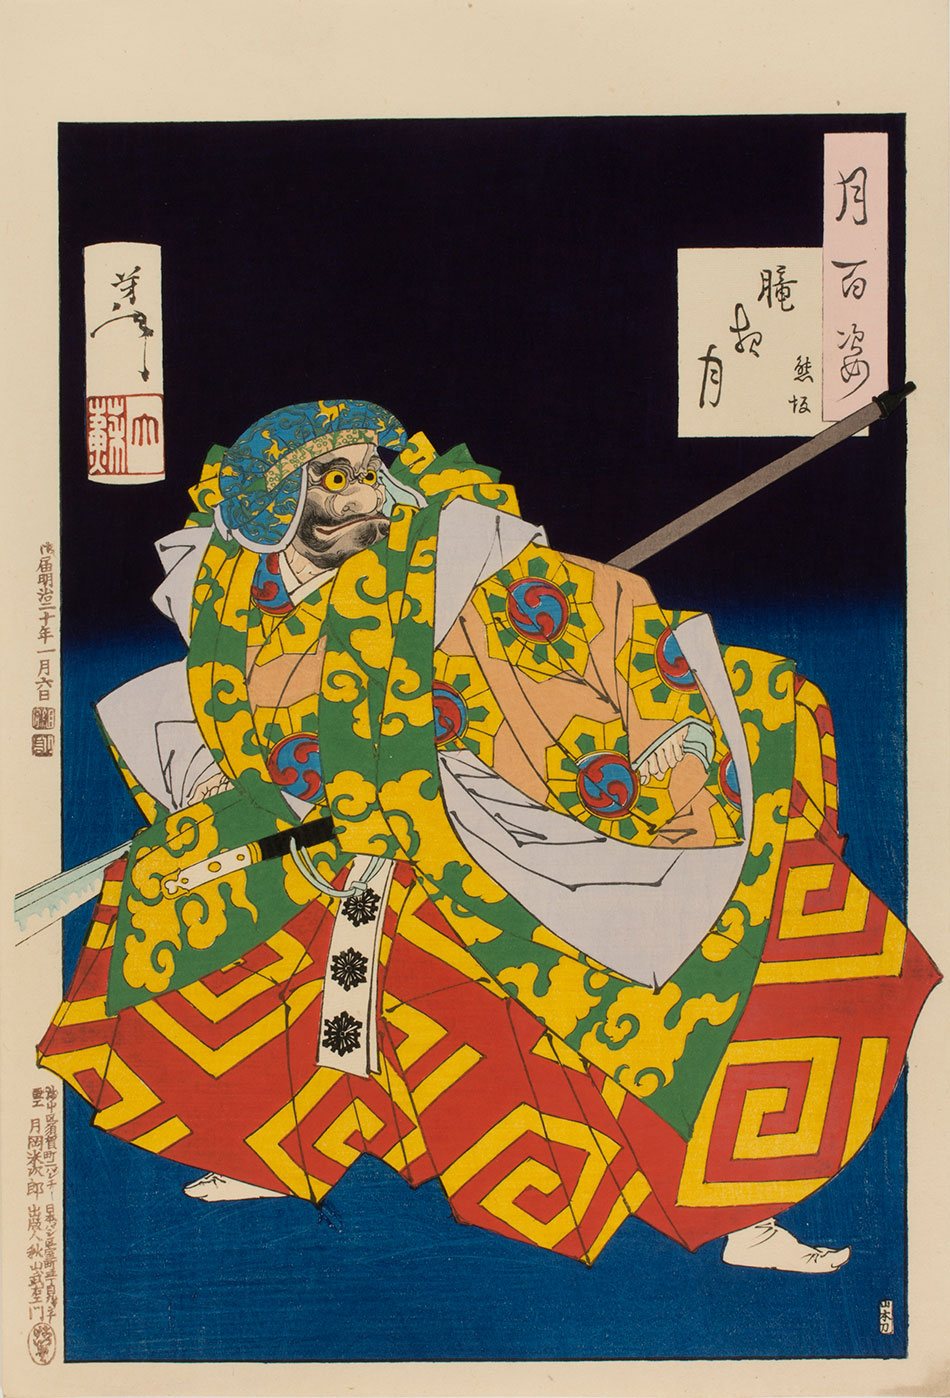 A-Noh-Actor-as-the-Warrior-Kamasaka-Chohan-on-a-Night-with-a-Misty-Moon,-from-the-series-One-Hundred-Aspects-of-the-Moon_by-Tsukioka-Yoshitoshi_Philadelphia-Museum-of-Art_950-W